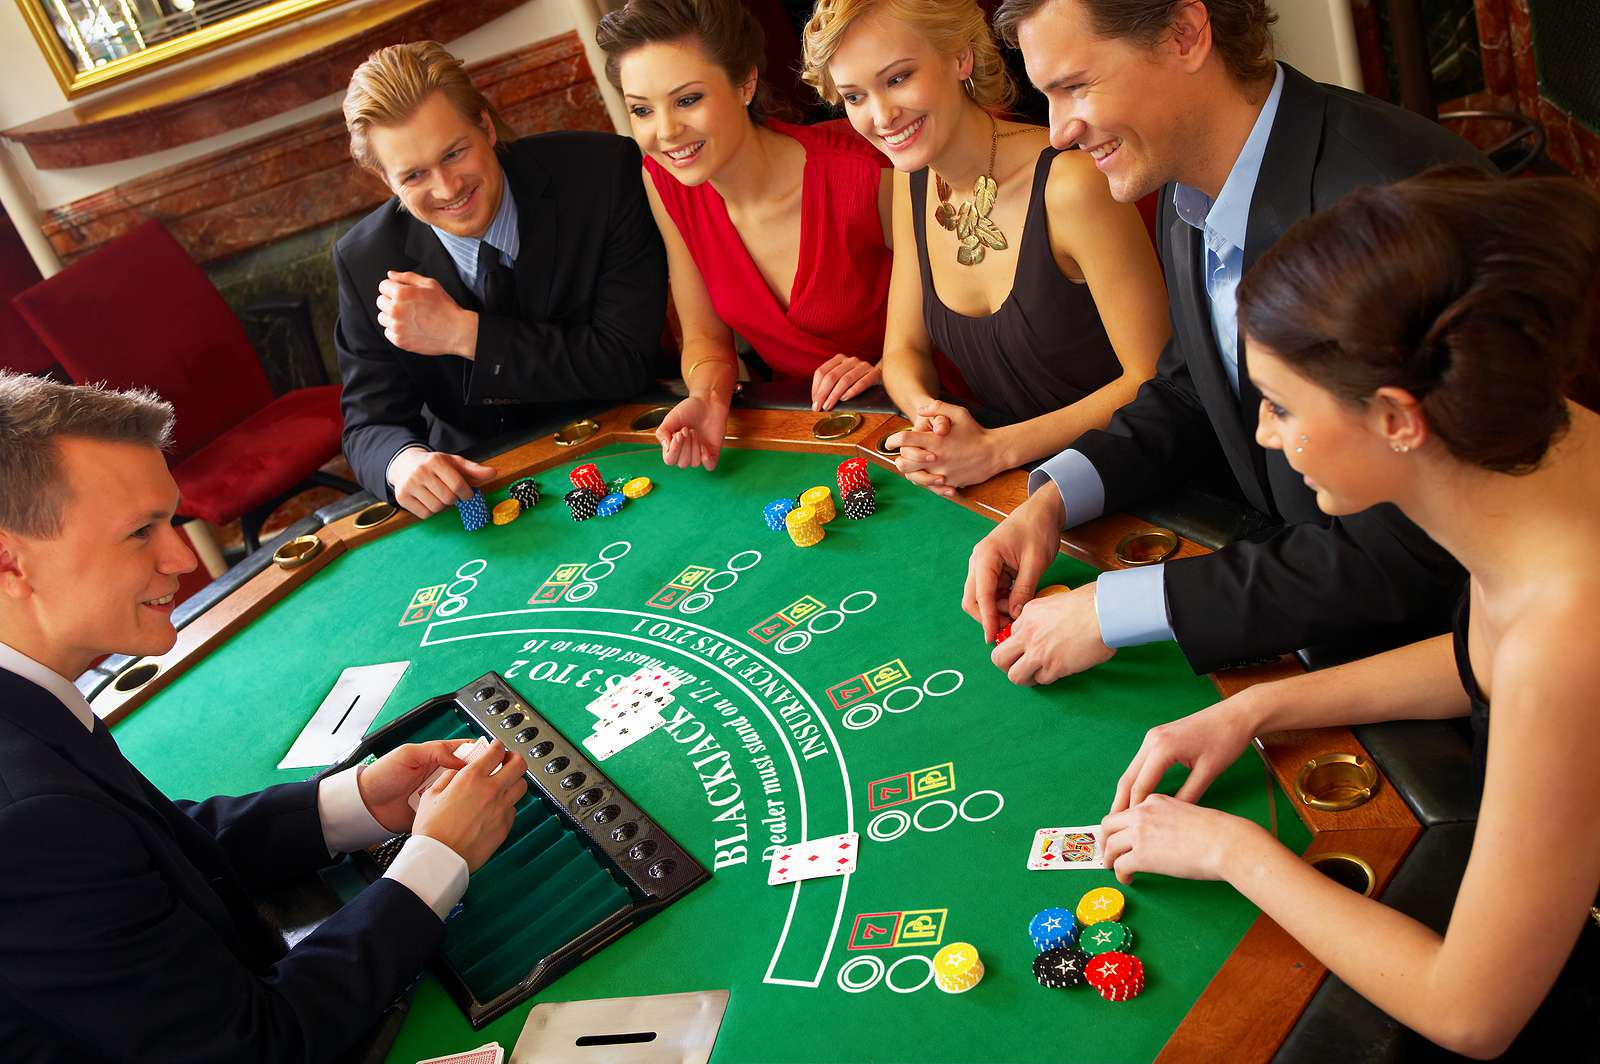 bigstock_Blackjack_Table_Friends_Havin_1395495